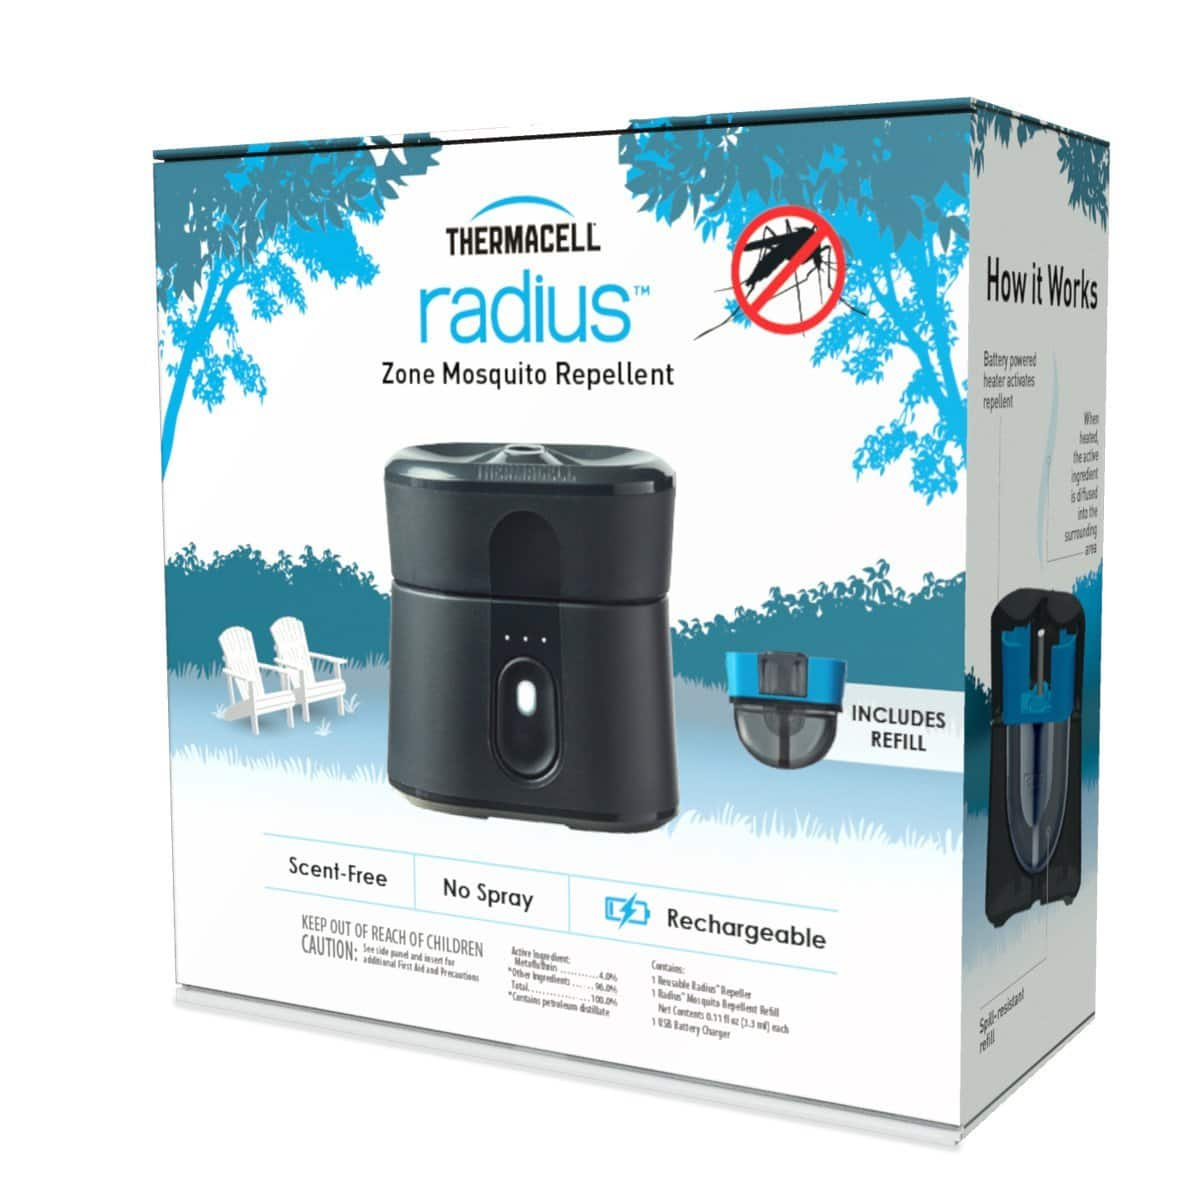 Thermacell Radius Zone Mosquito Repellent- $37.79 after coupon + Prime